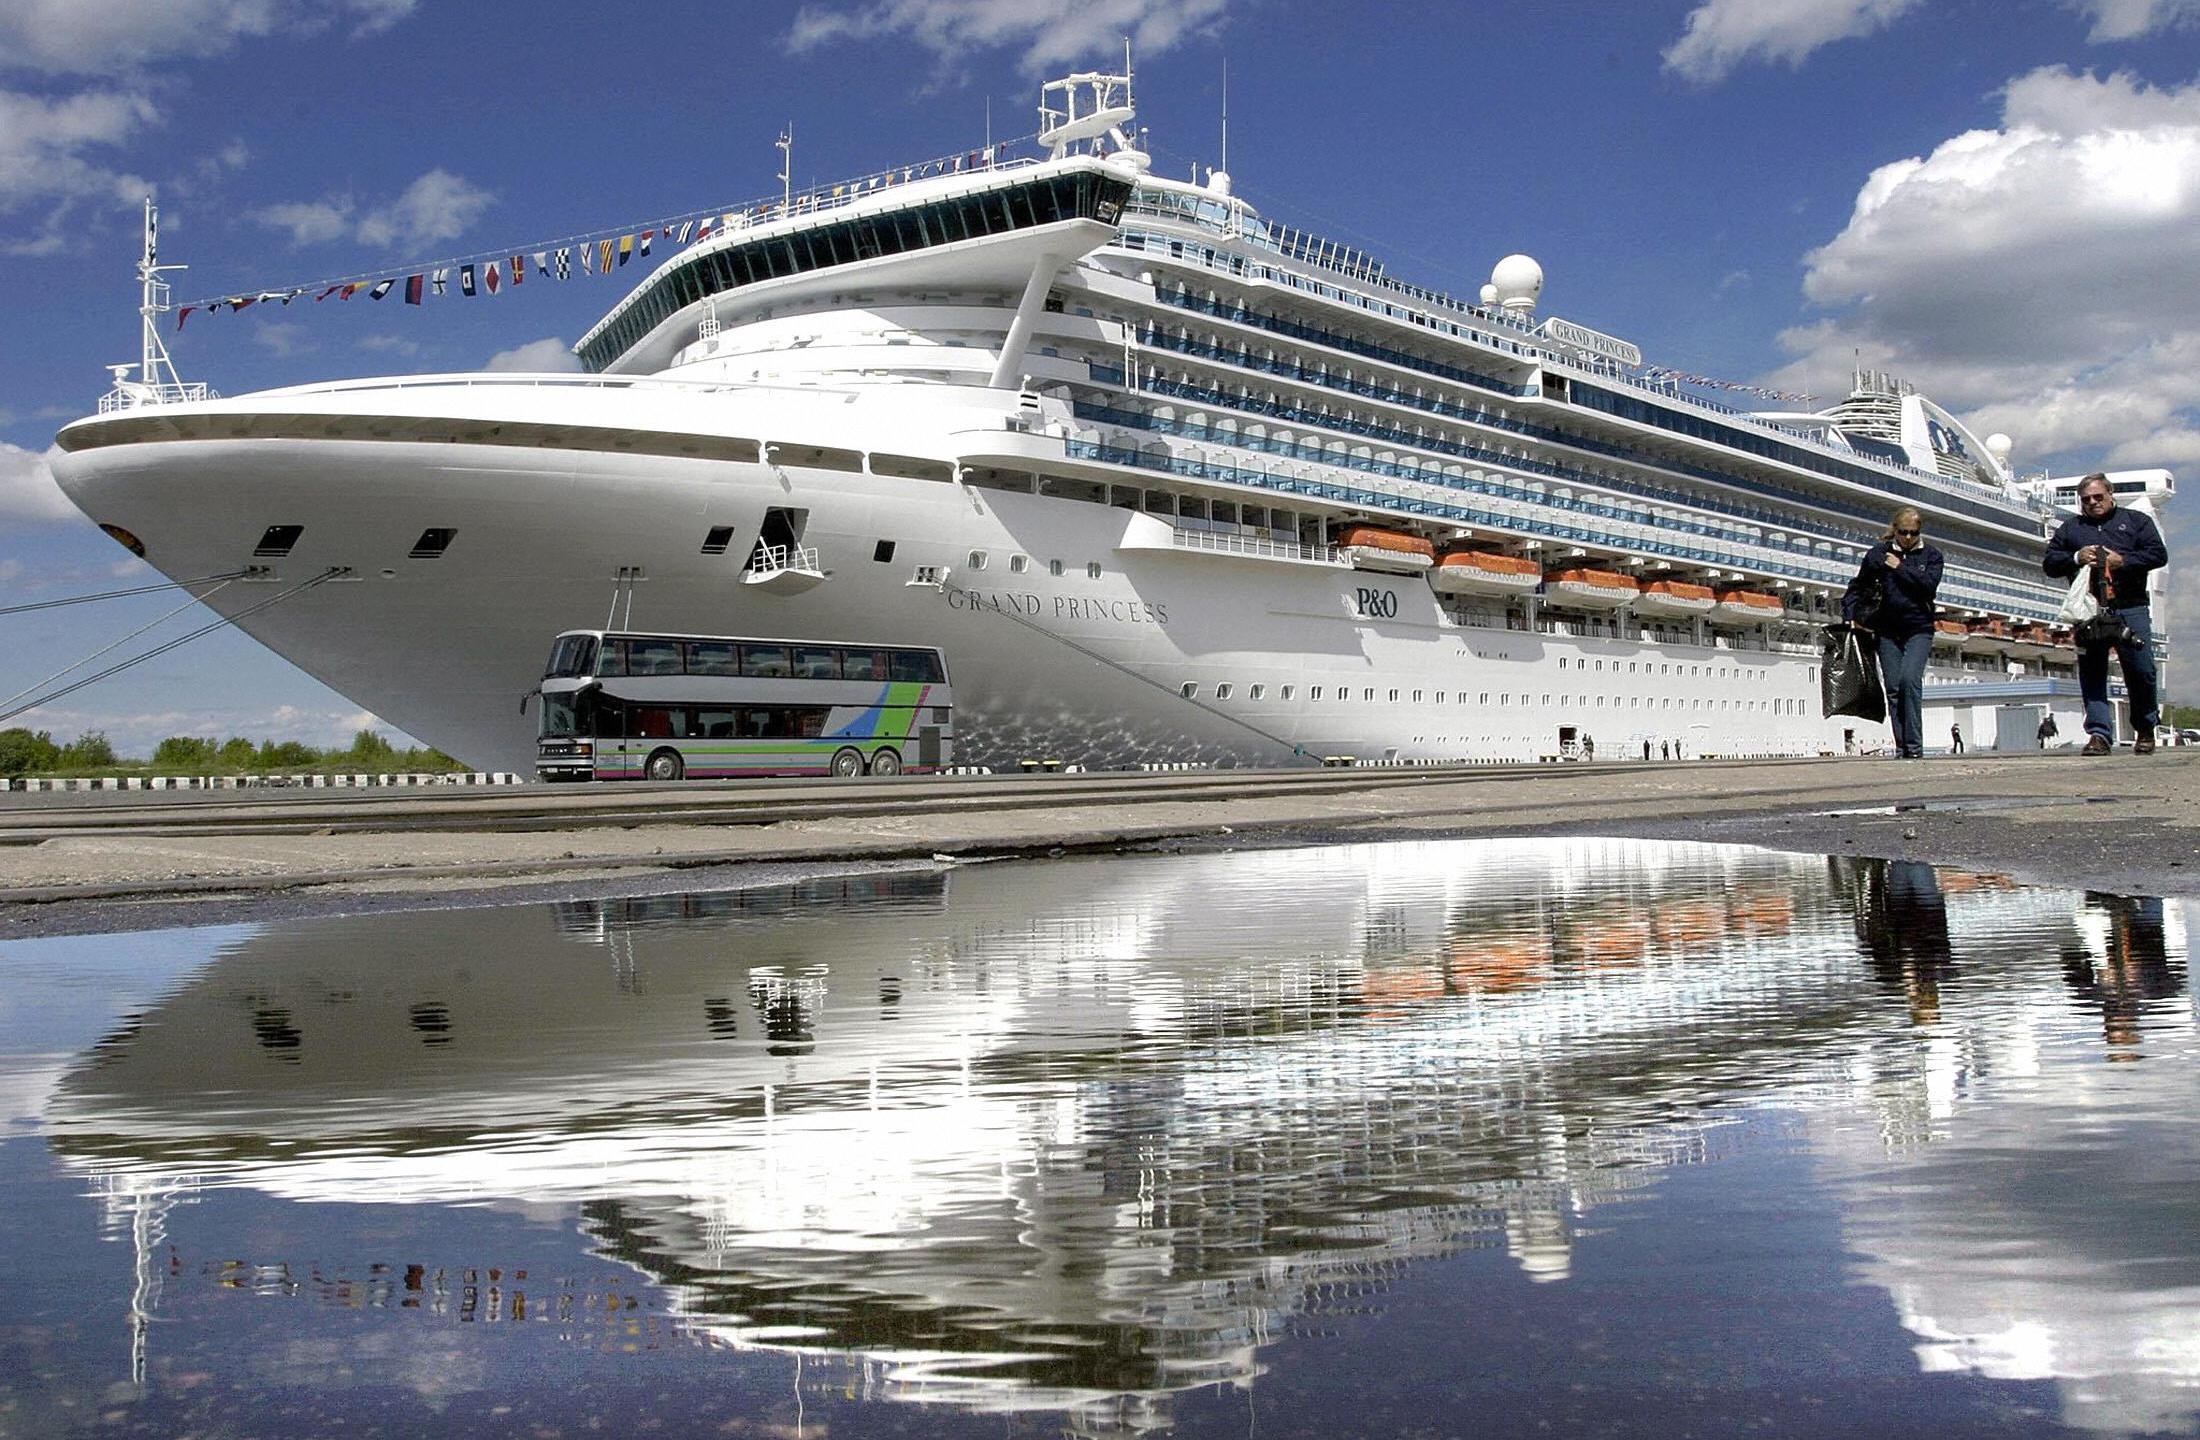 """The """"Grand Princess"""" is seen docked in St Petersburg port on May 24, 2004. (STRINGER/AFP via Getty Images)"""